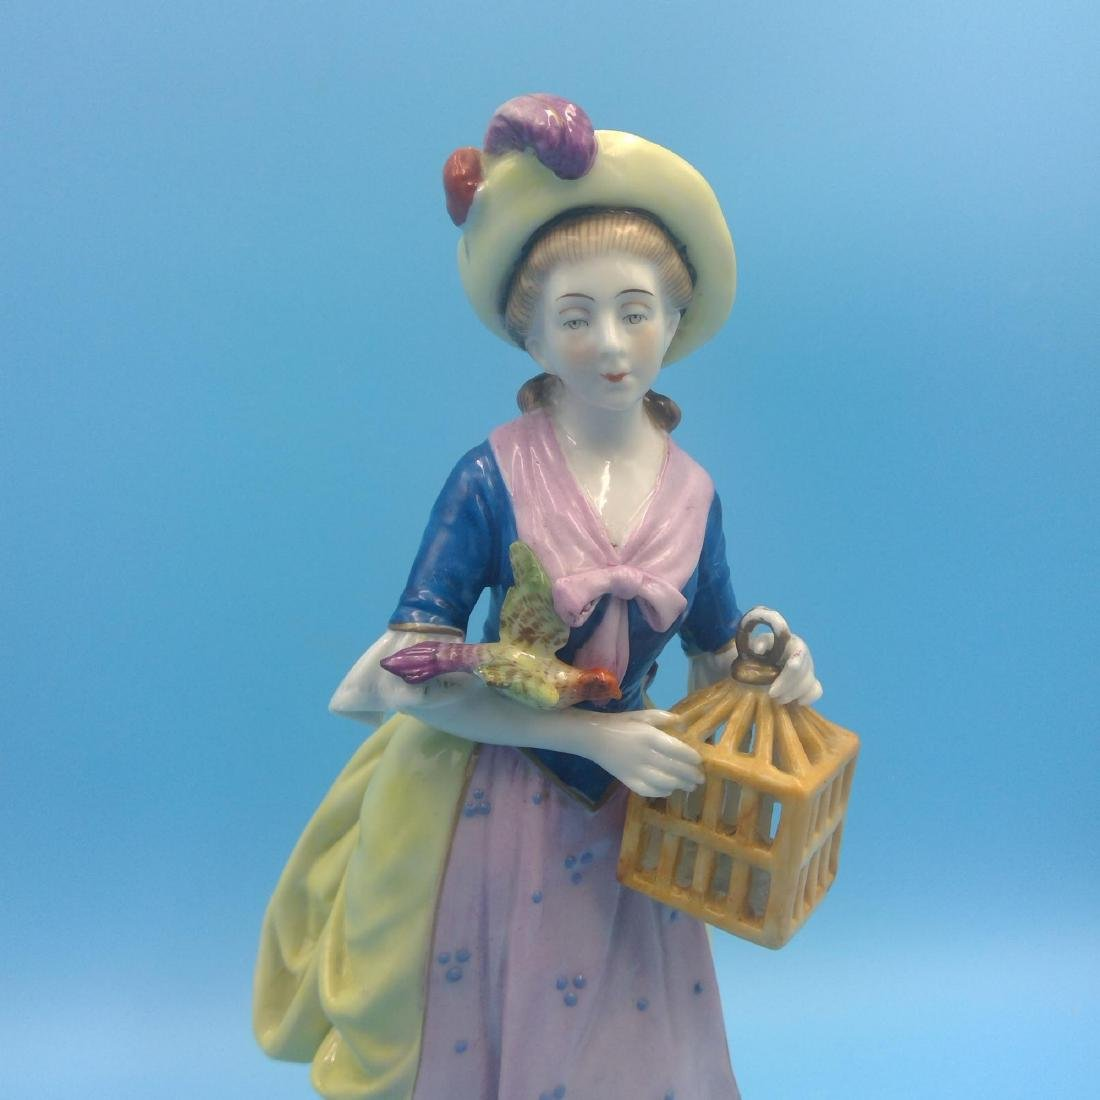 GROUP OF 3 CHELSEA 18thC ENGLISH PORCELAIN FIGURES - 8